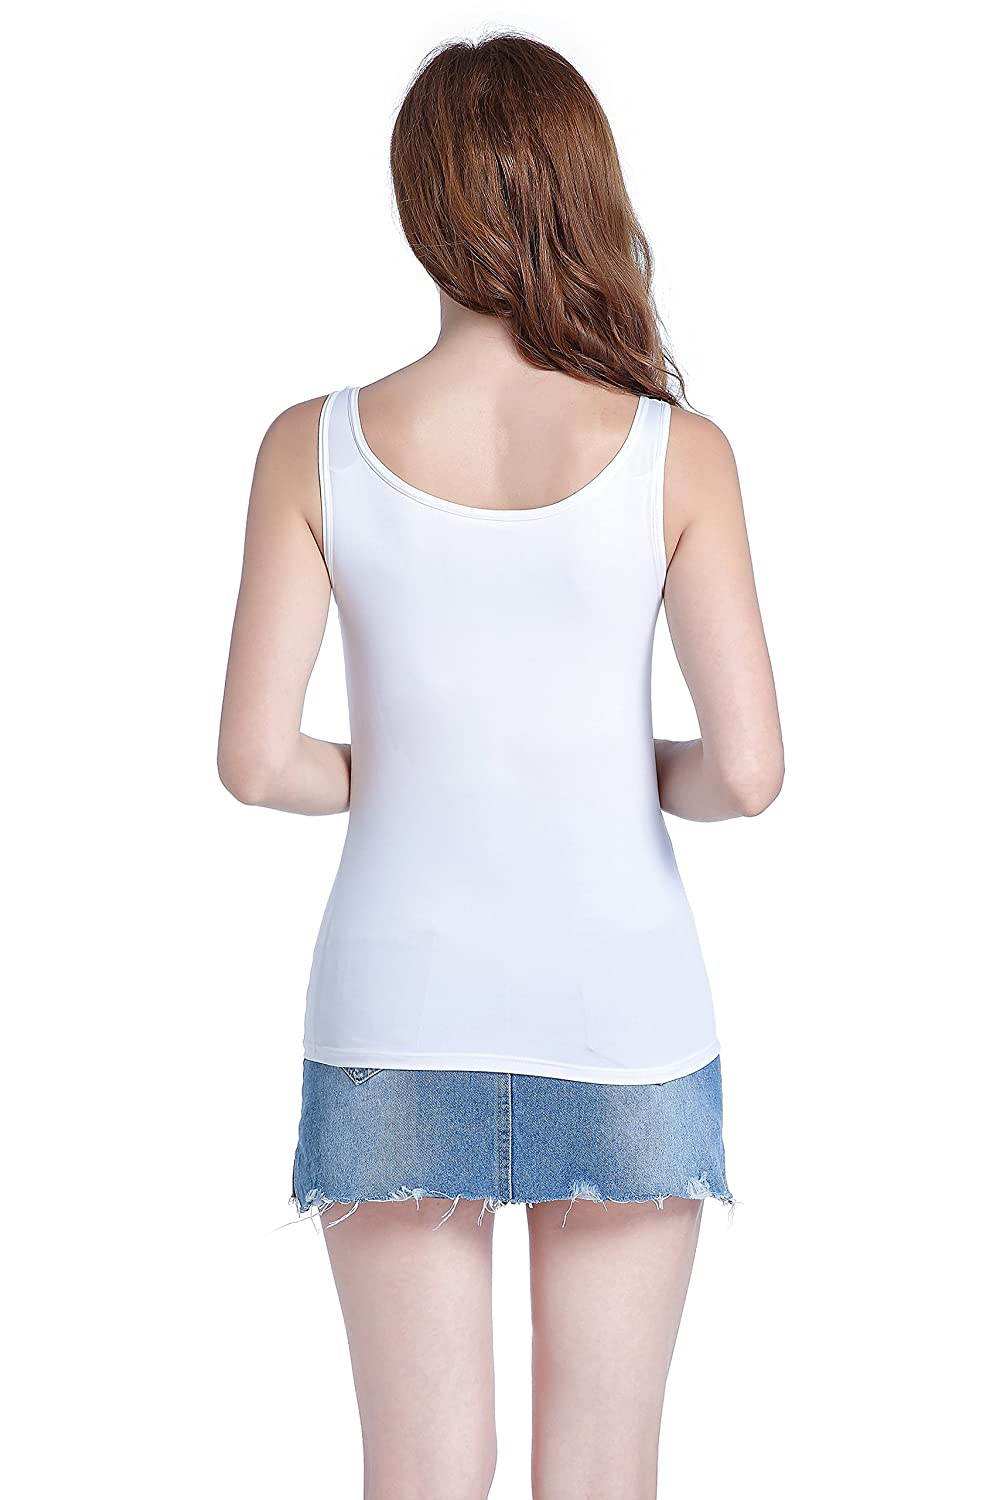 a4193f2f09cc7 HBY Womens Camisole Built-in Shelf Padded Bra Cami Bra Straps Tank Top  Solid Color